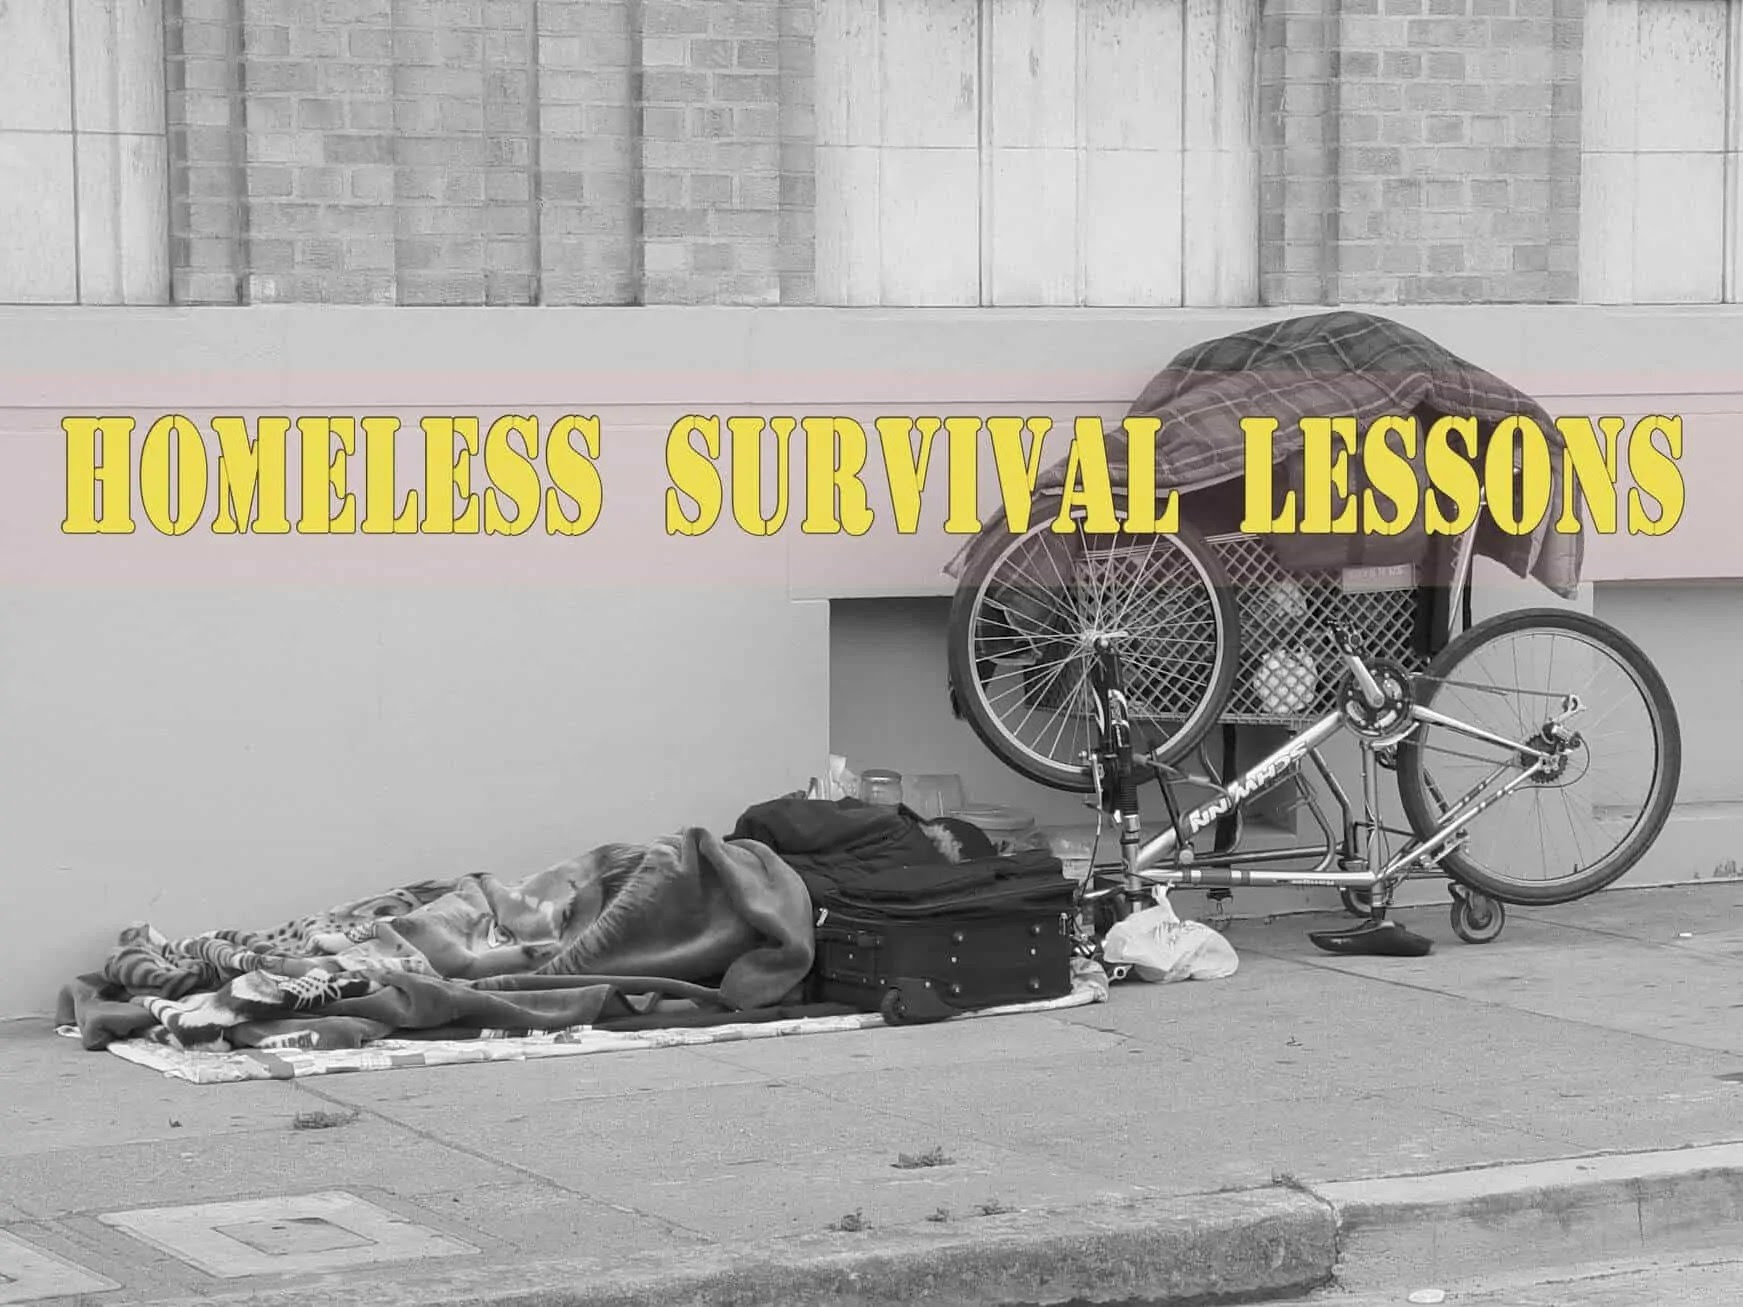 Homeless Survival Lessons – Good tips for all